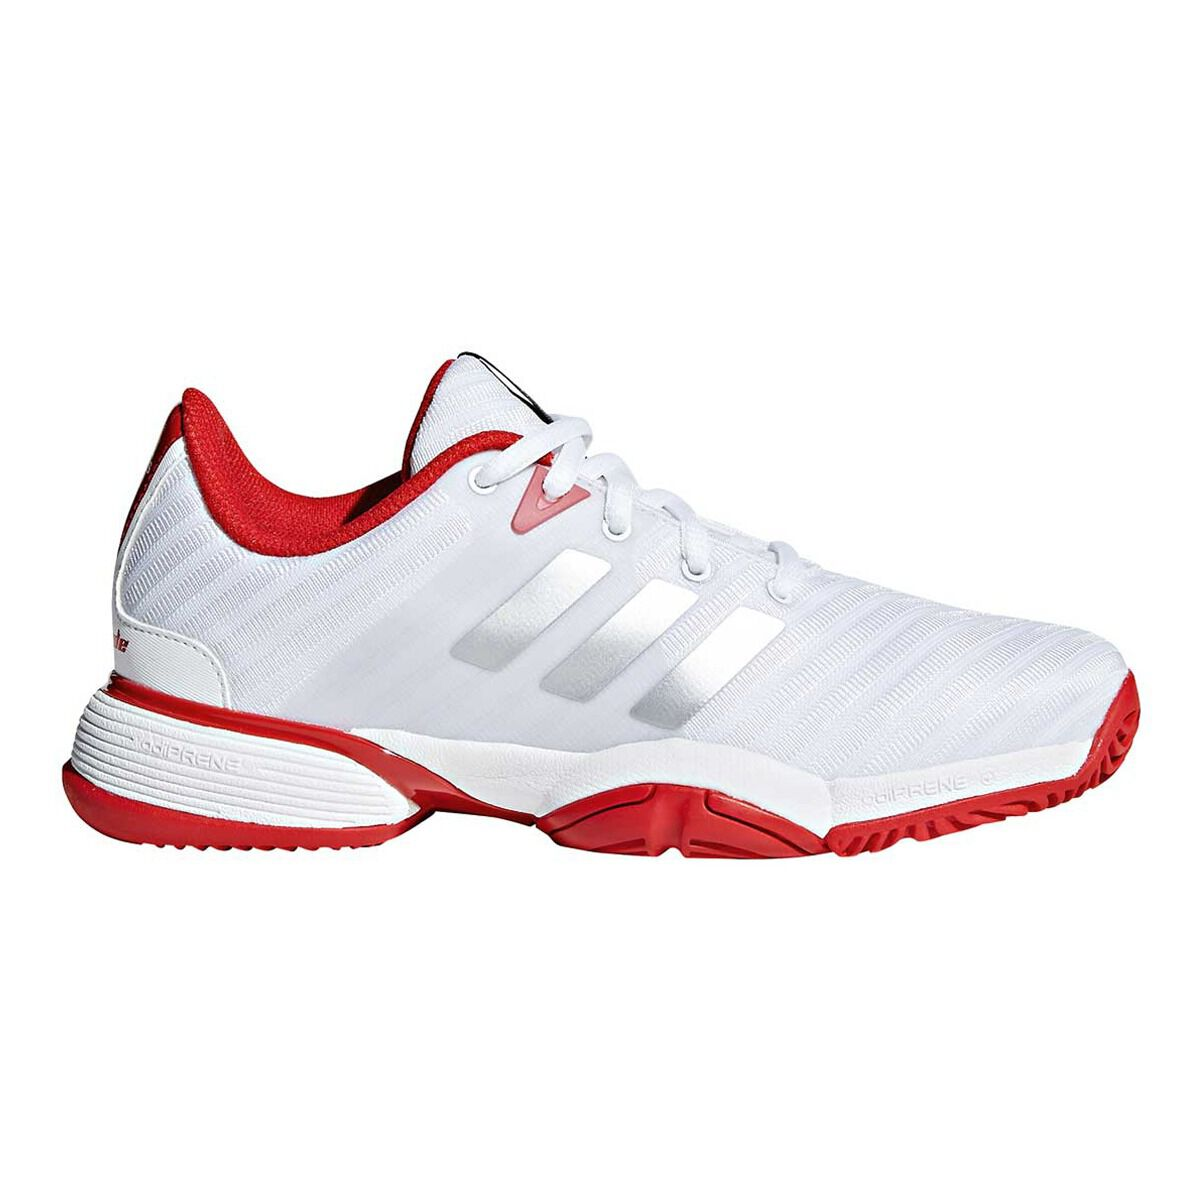 adidas barricade 0 tennis shoes, New adidas shoes casual